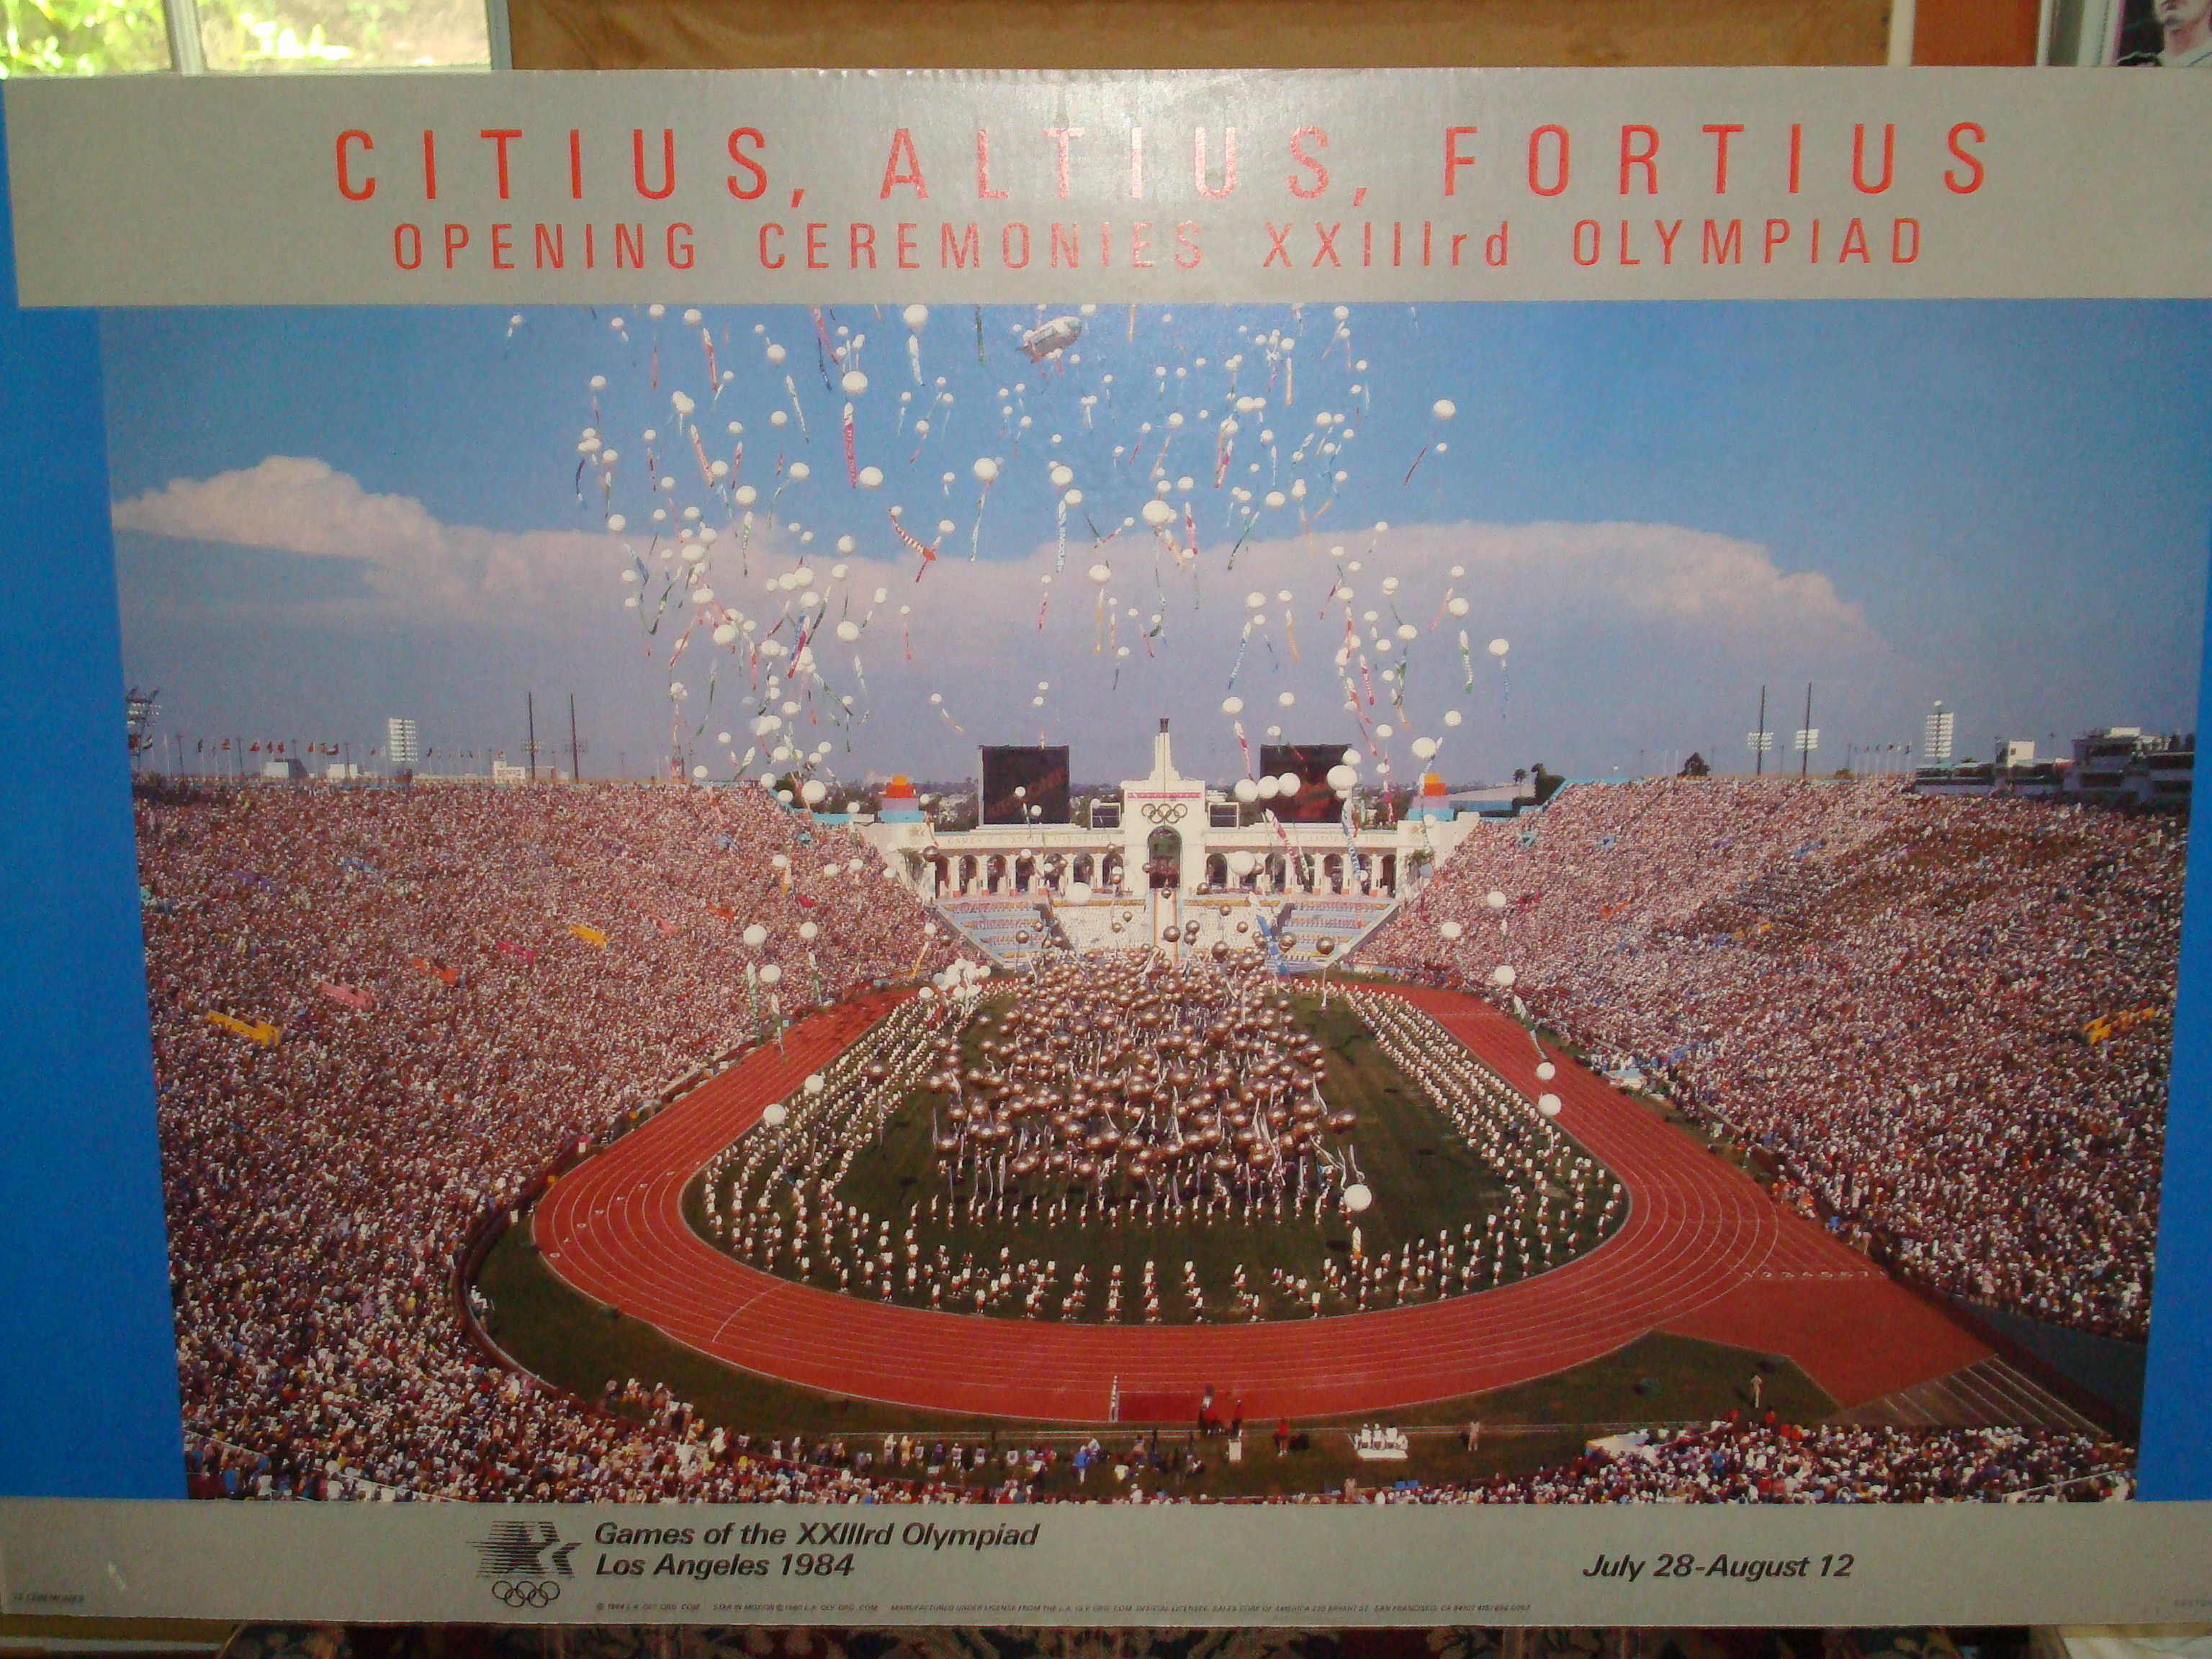 Los Angeles 1984 Summer Olympics - results & video highlights